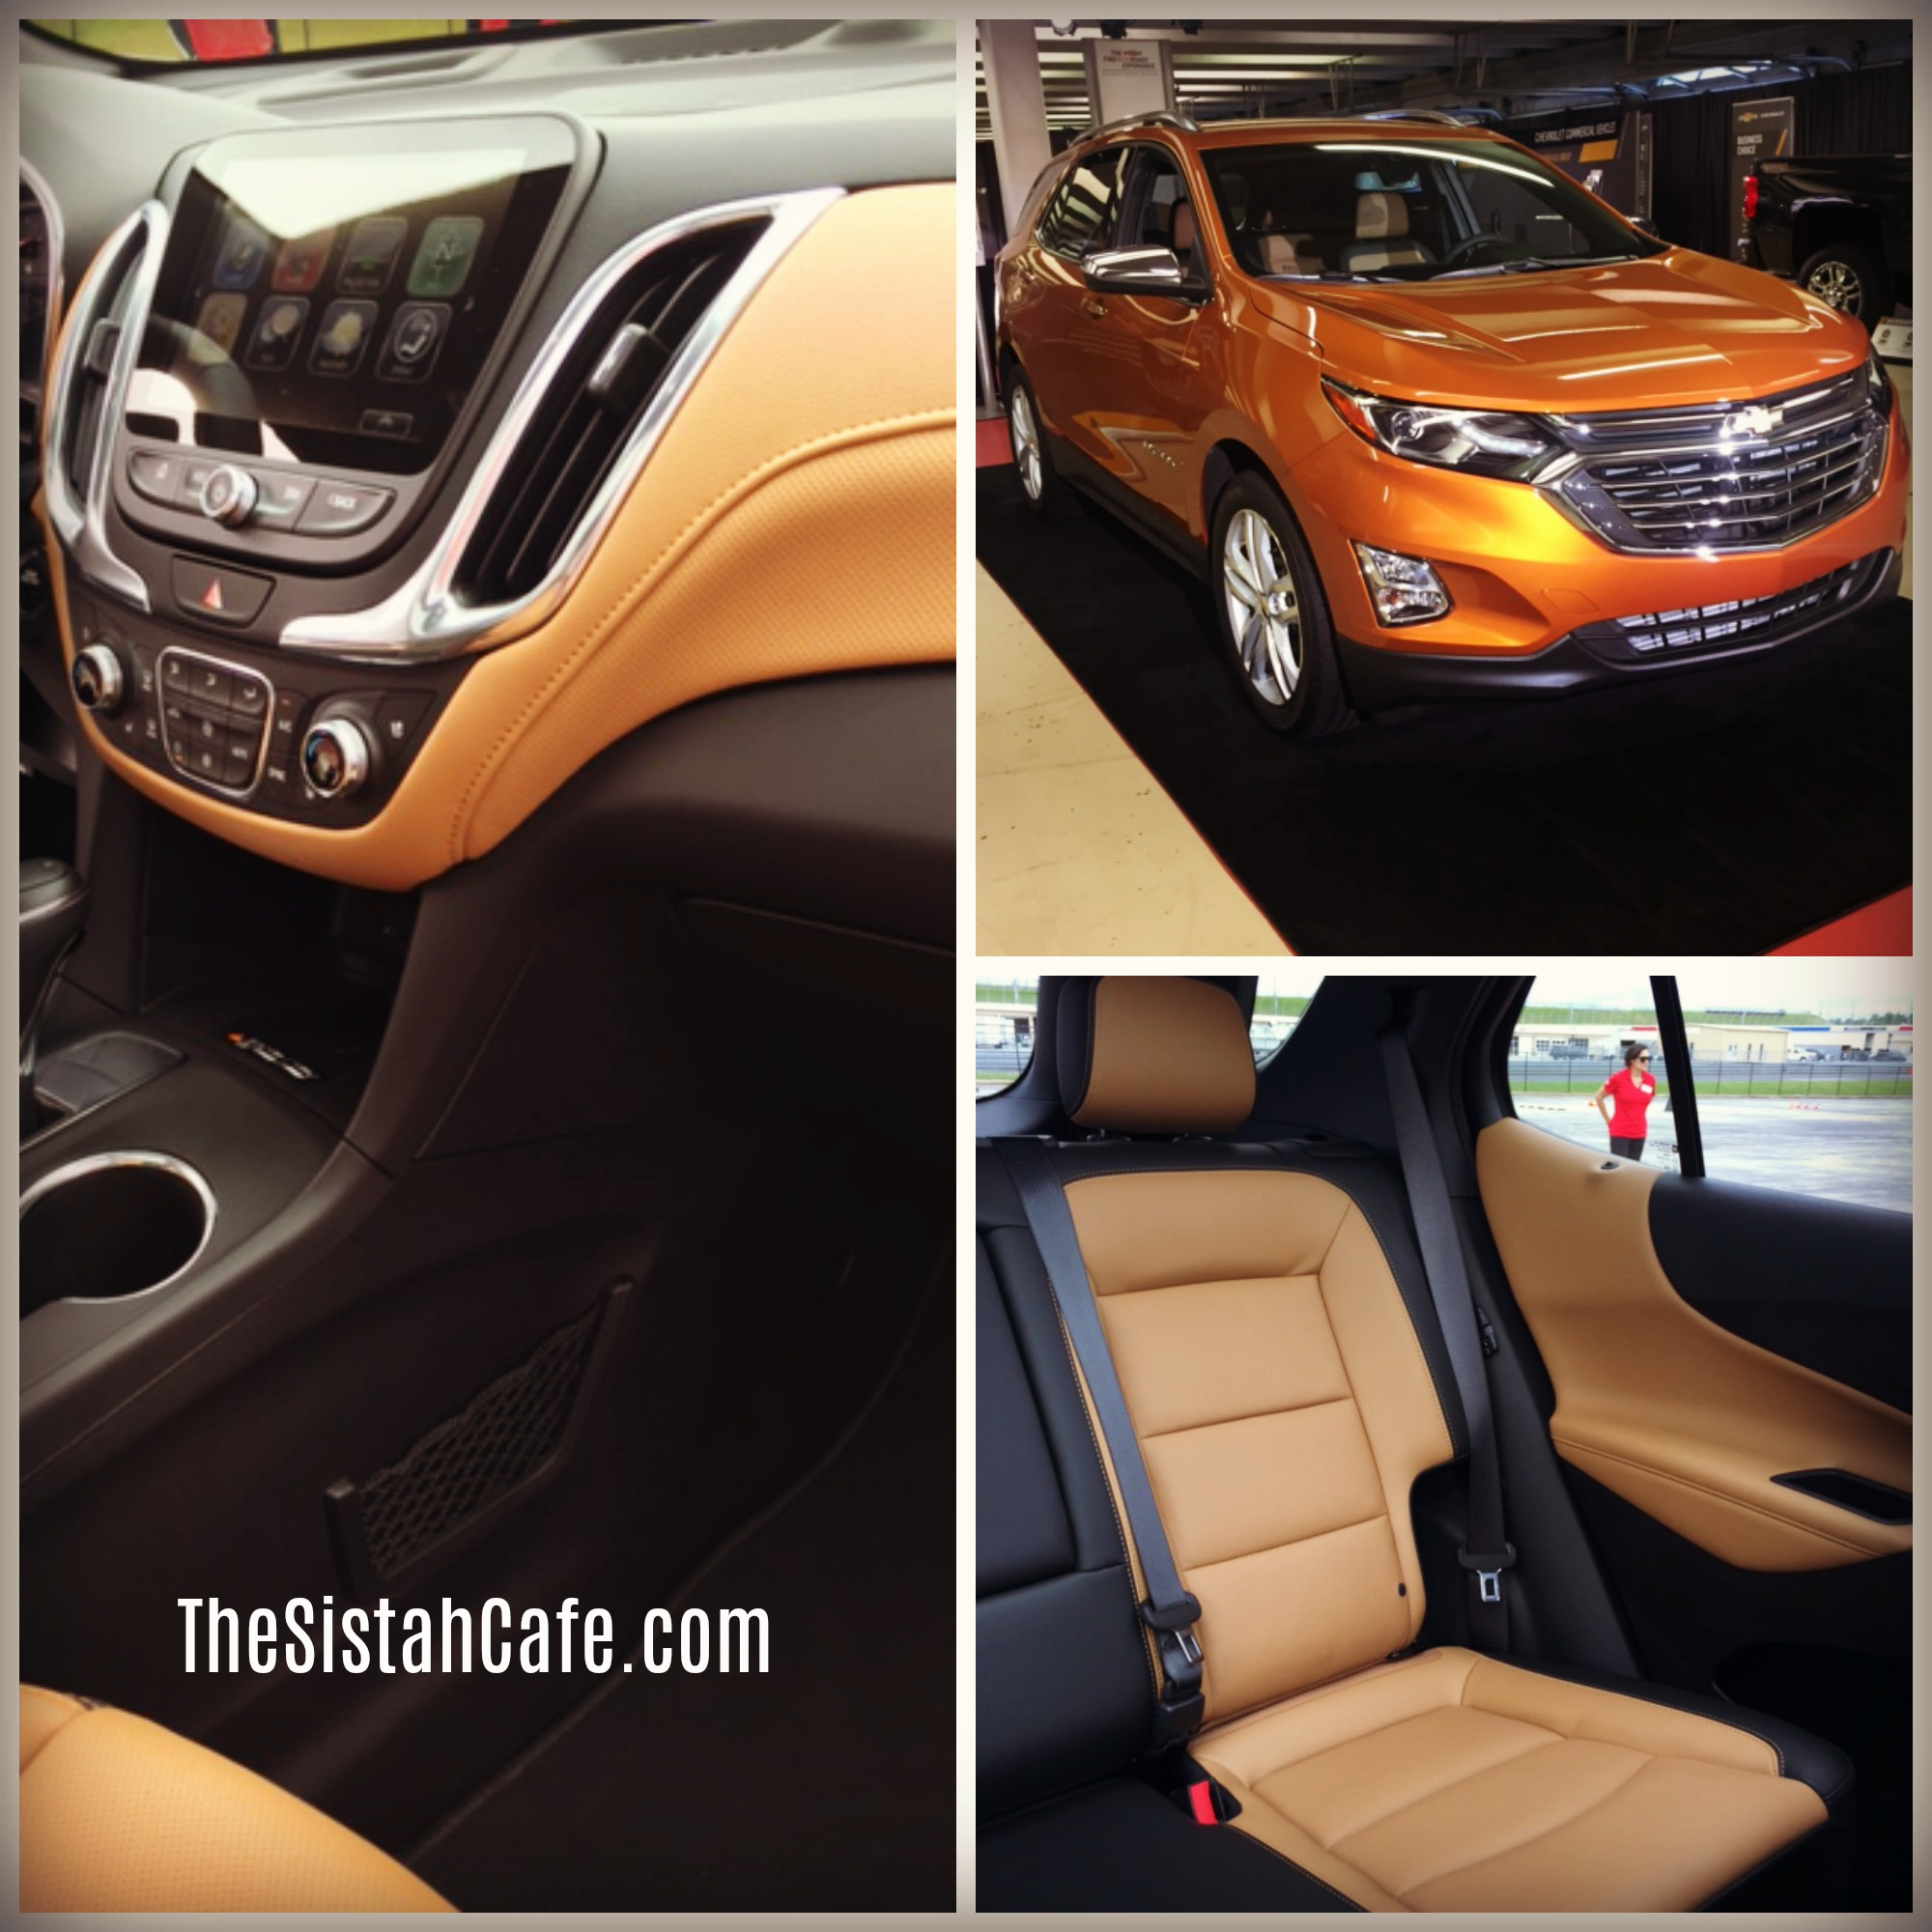 2018 Chevy Equinox Interior: My Chevy Find New Roads Experience #FindNewRoads